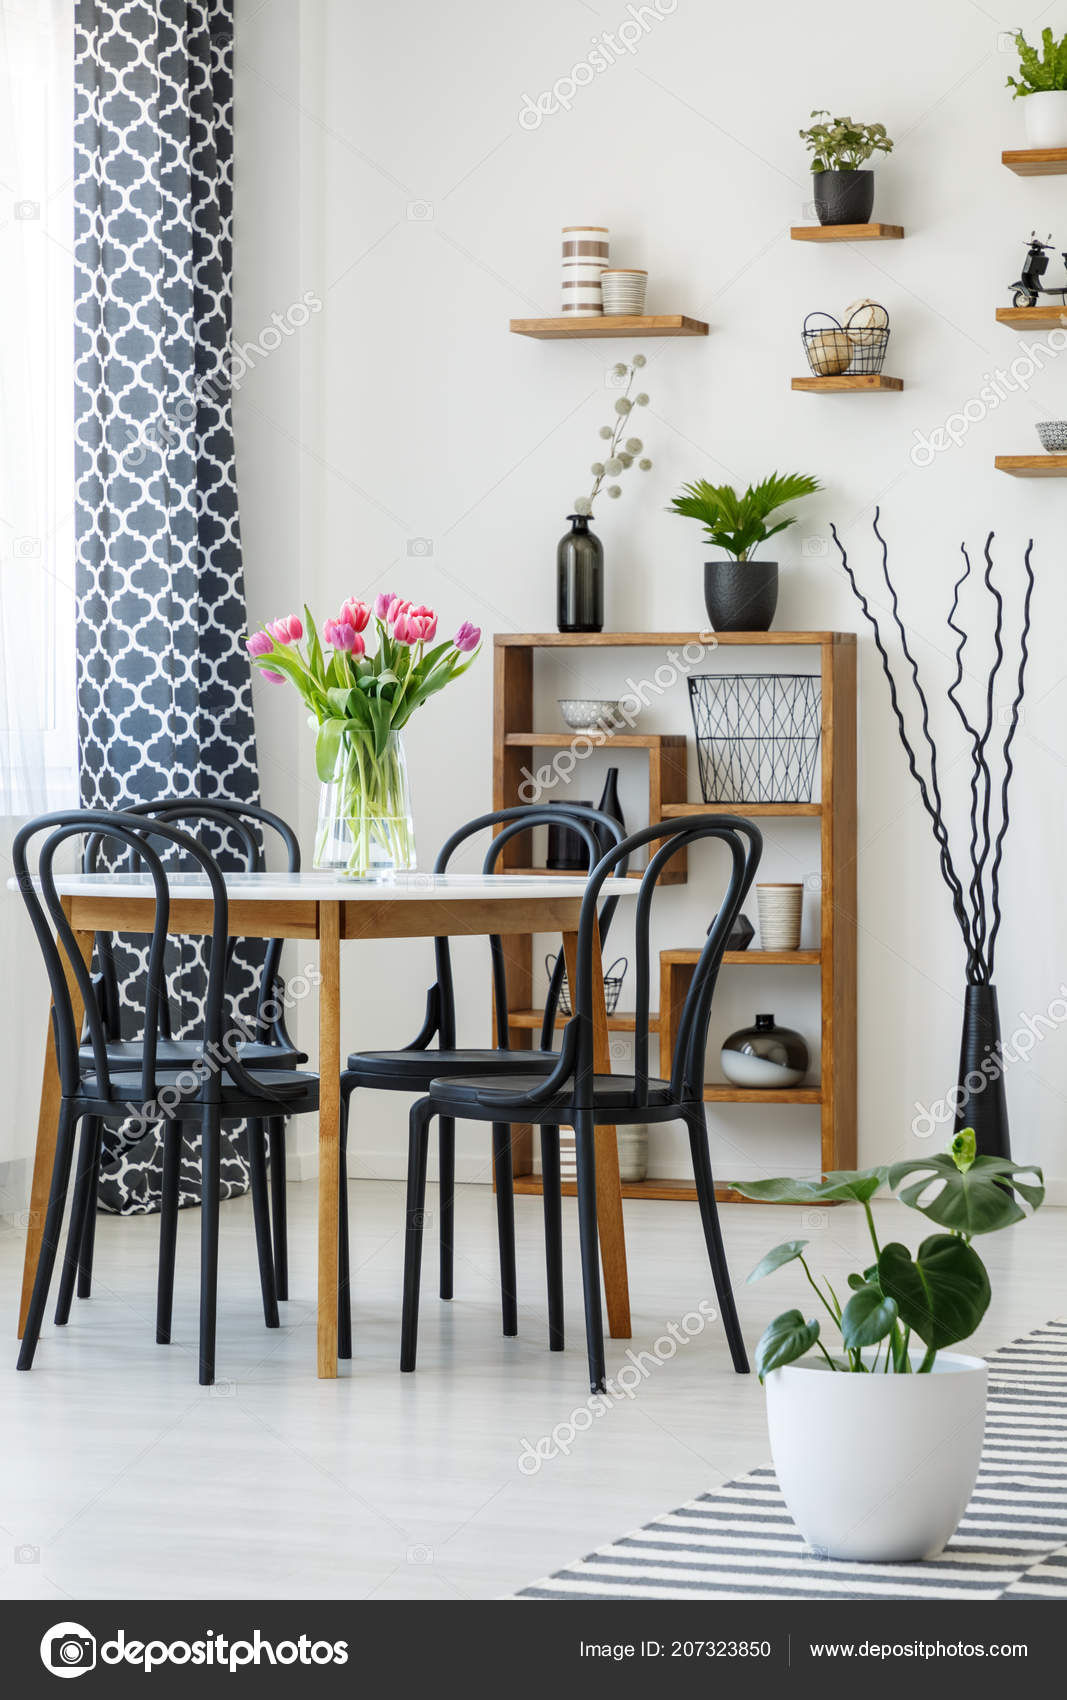 Industrial Dining Room Interior Table Black Chairs Pink Tulips